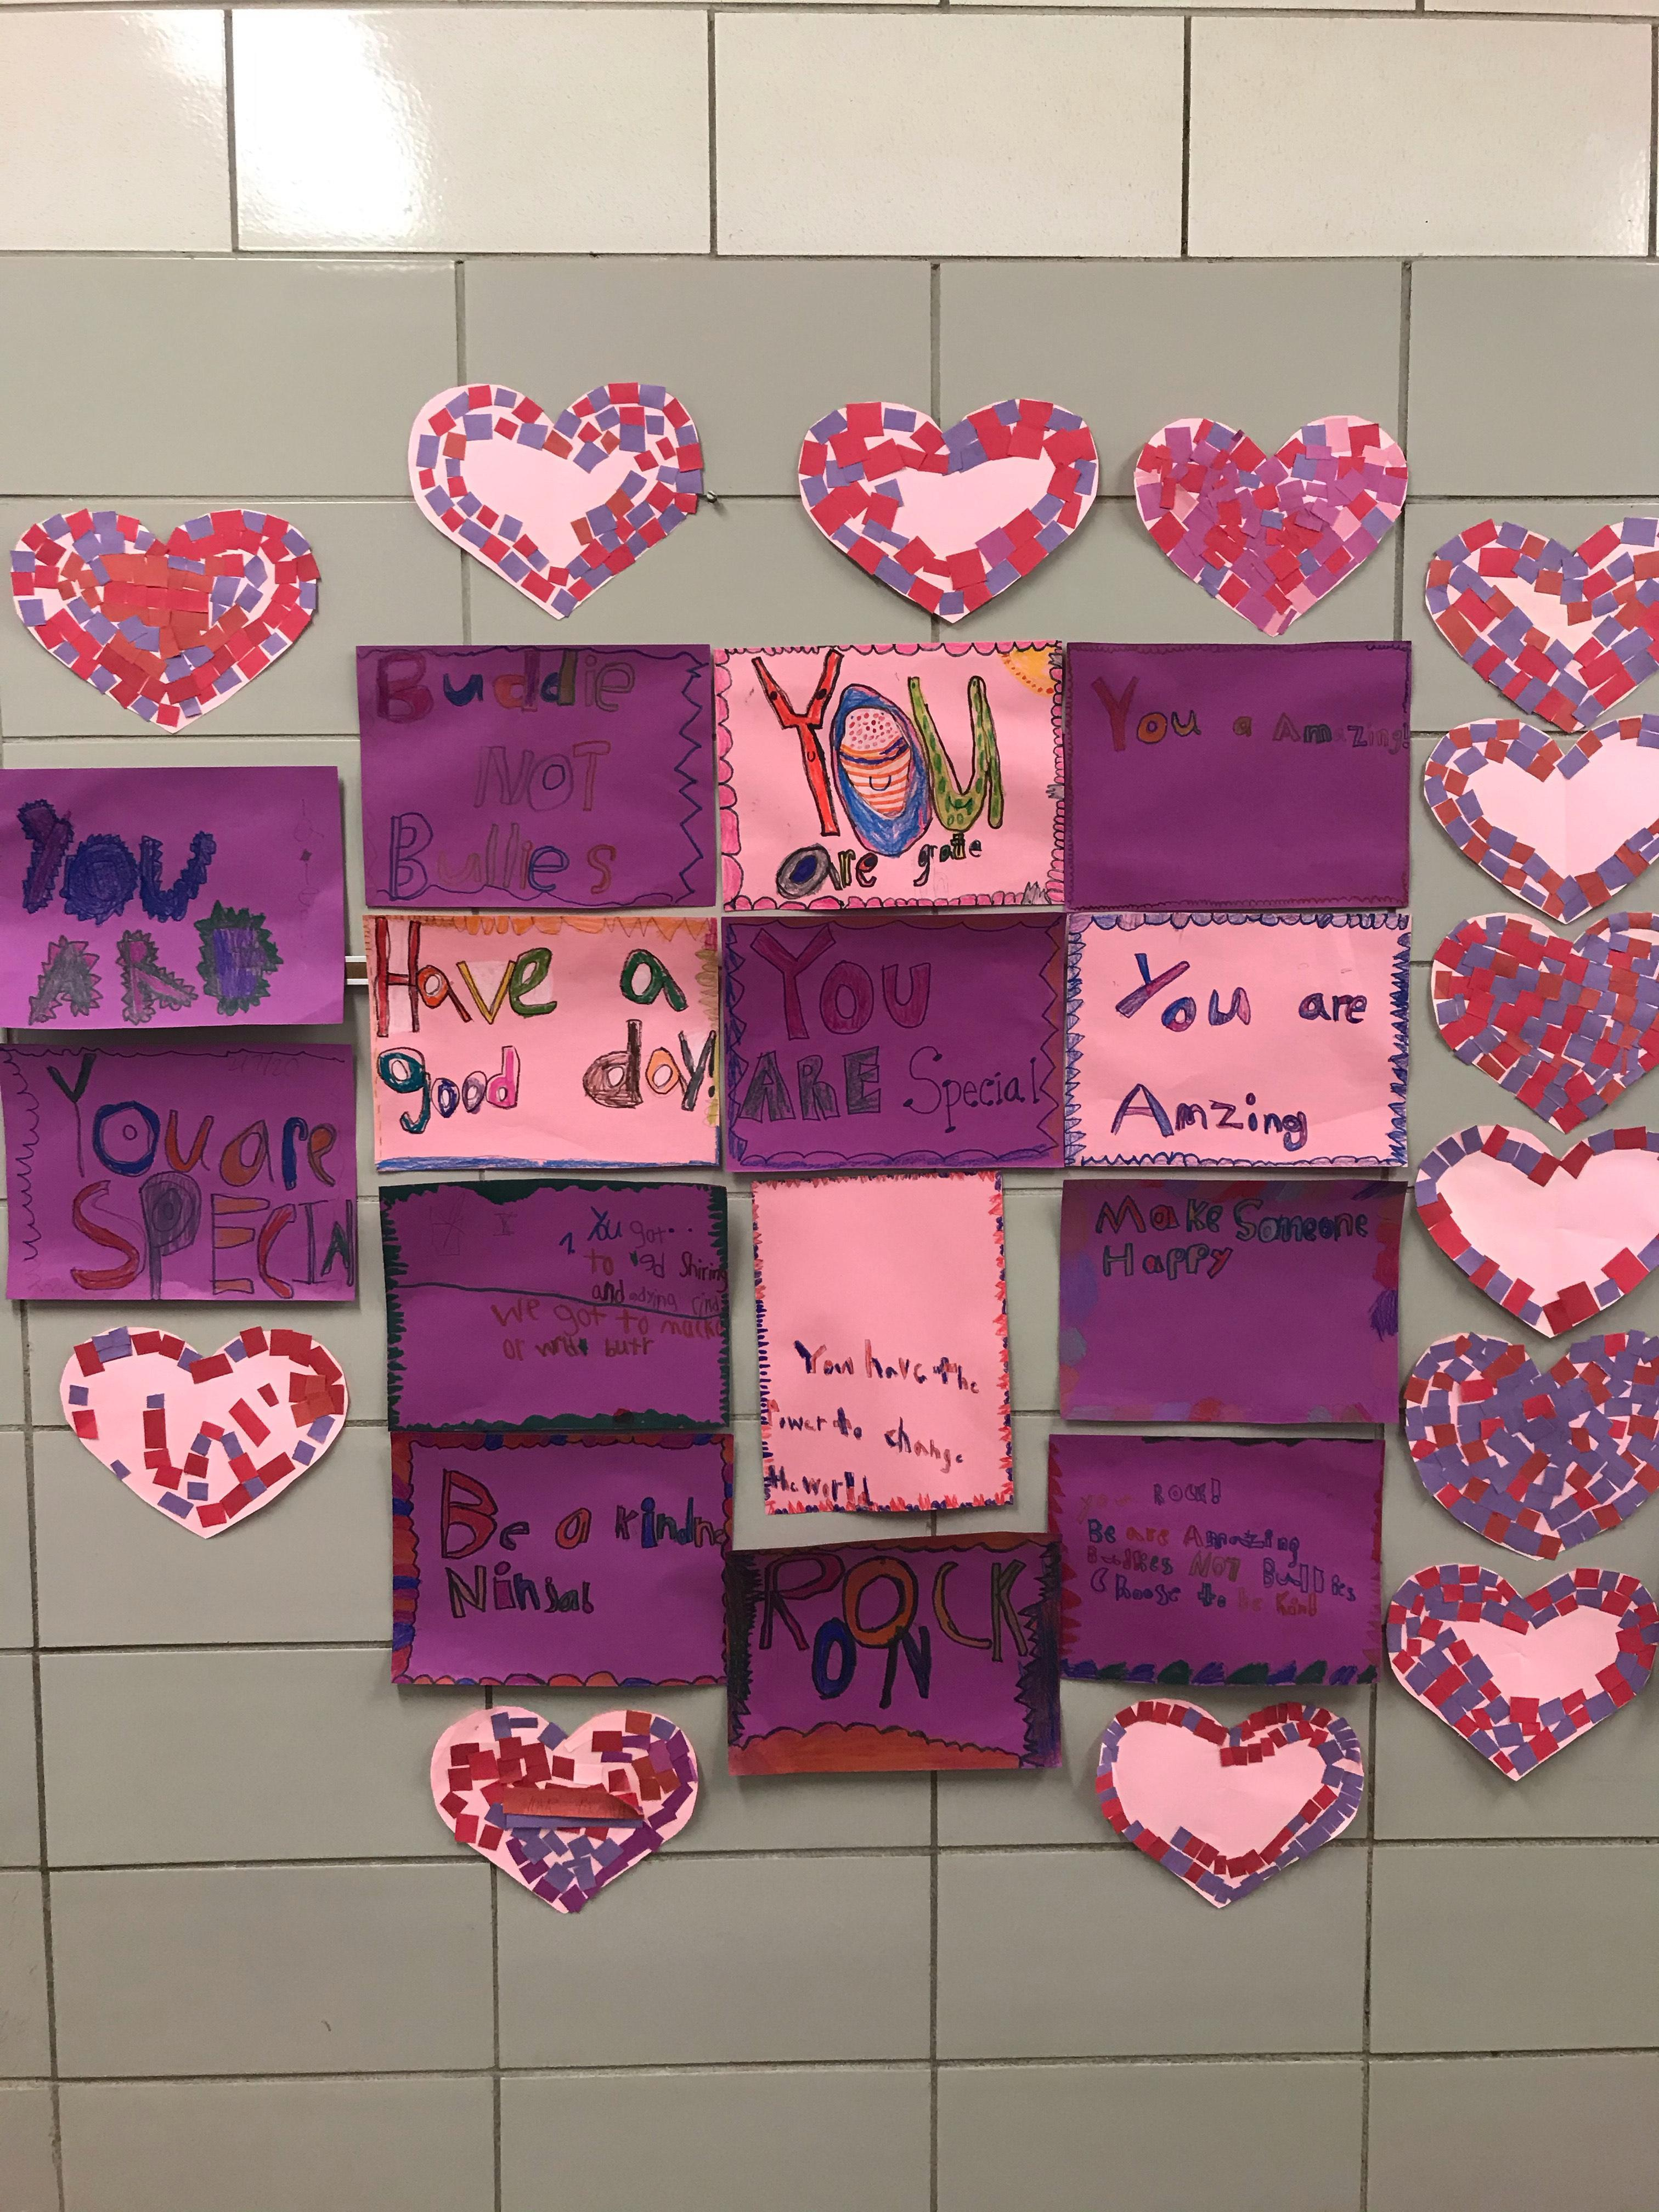 bulletin board with messages of kindness for PS I Love You Day